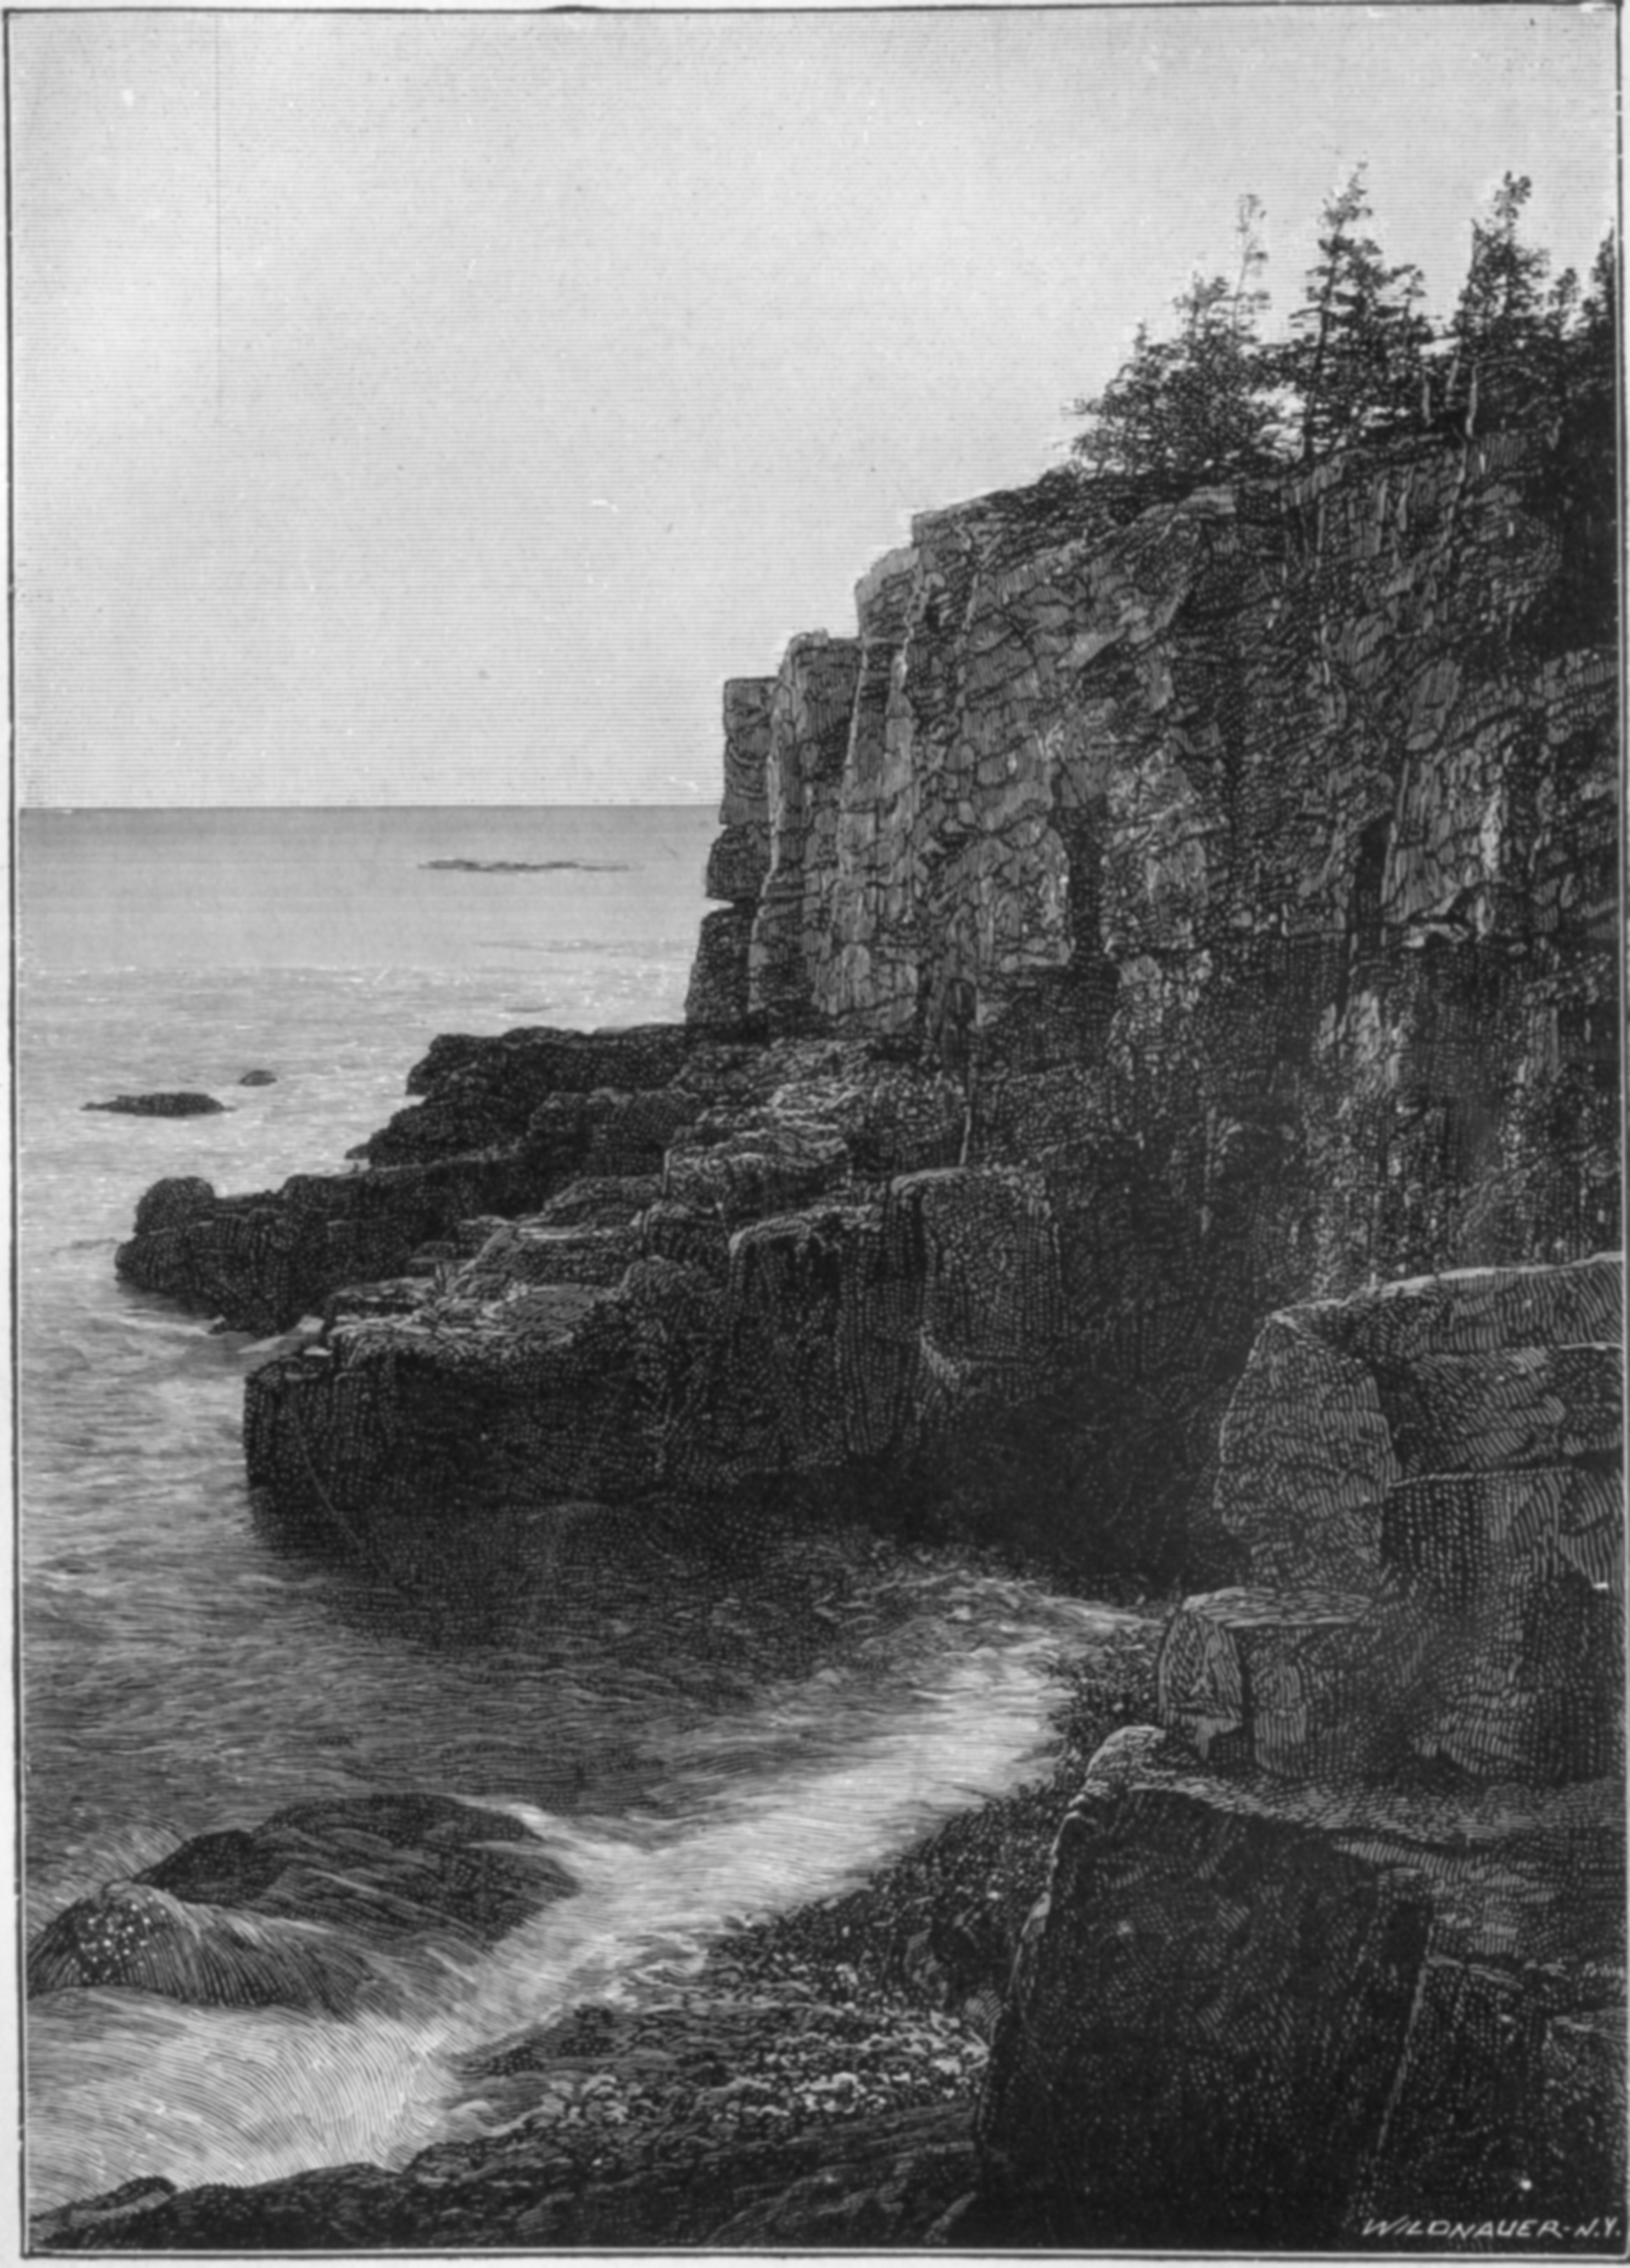 Otter Cliff - Before 1905